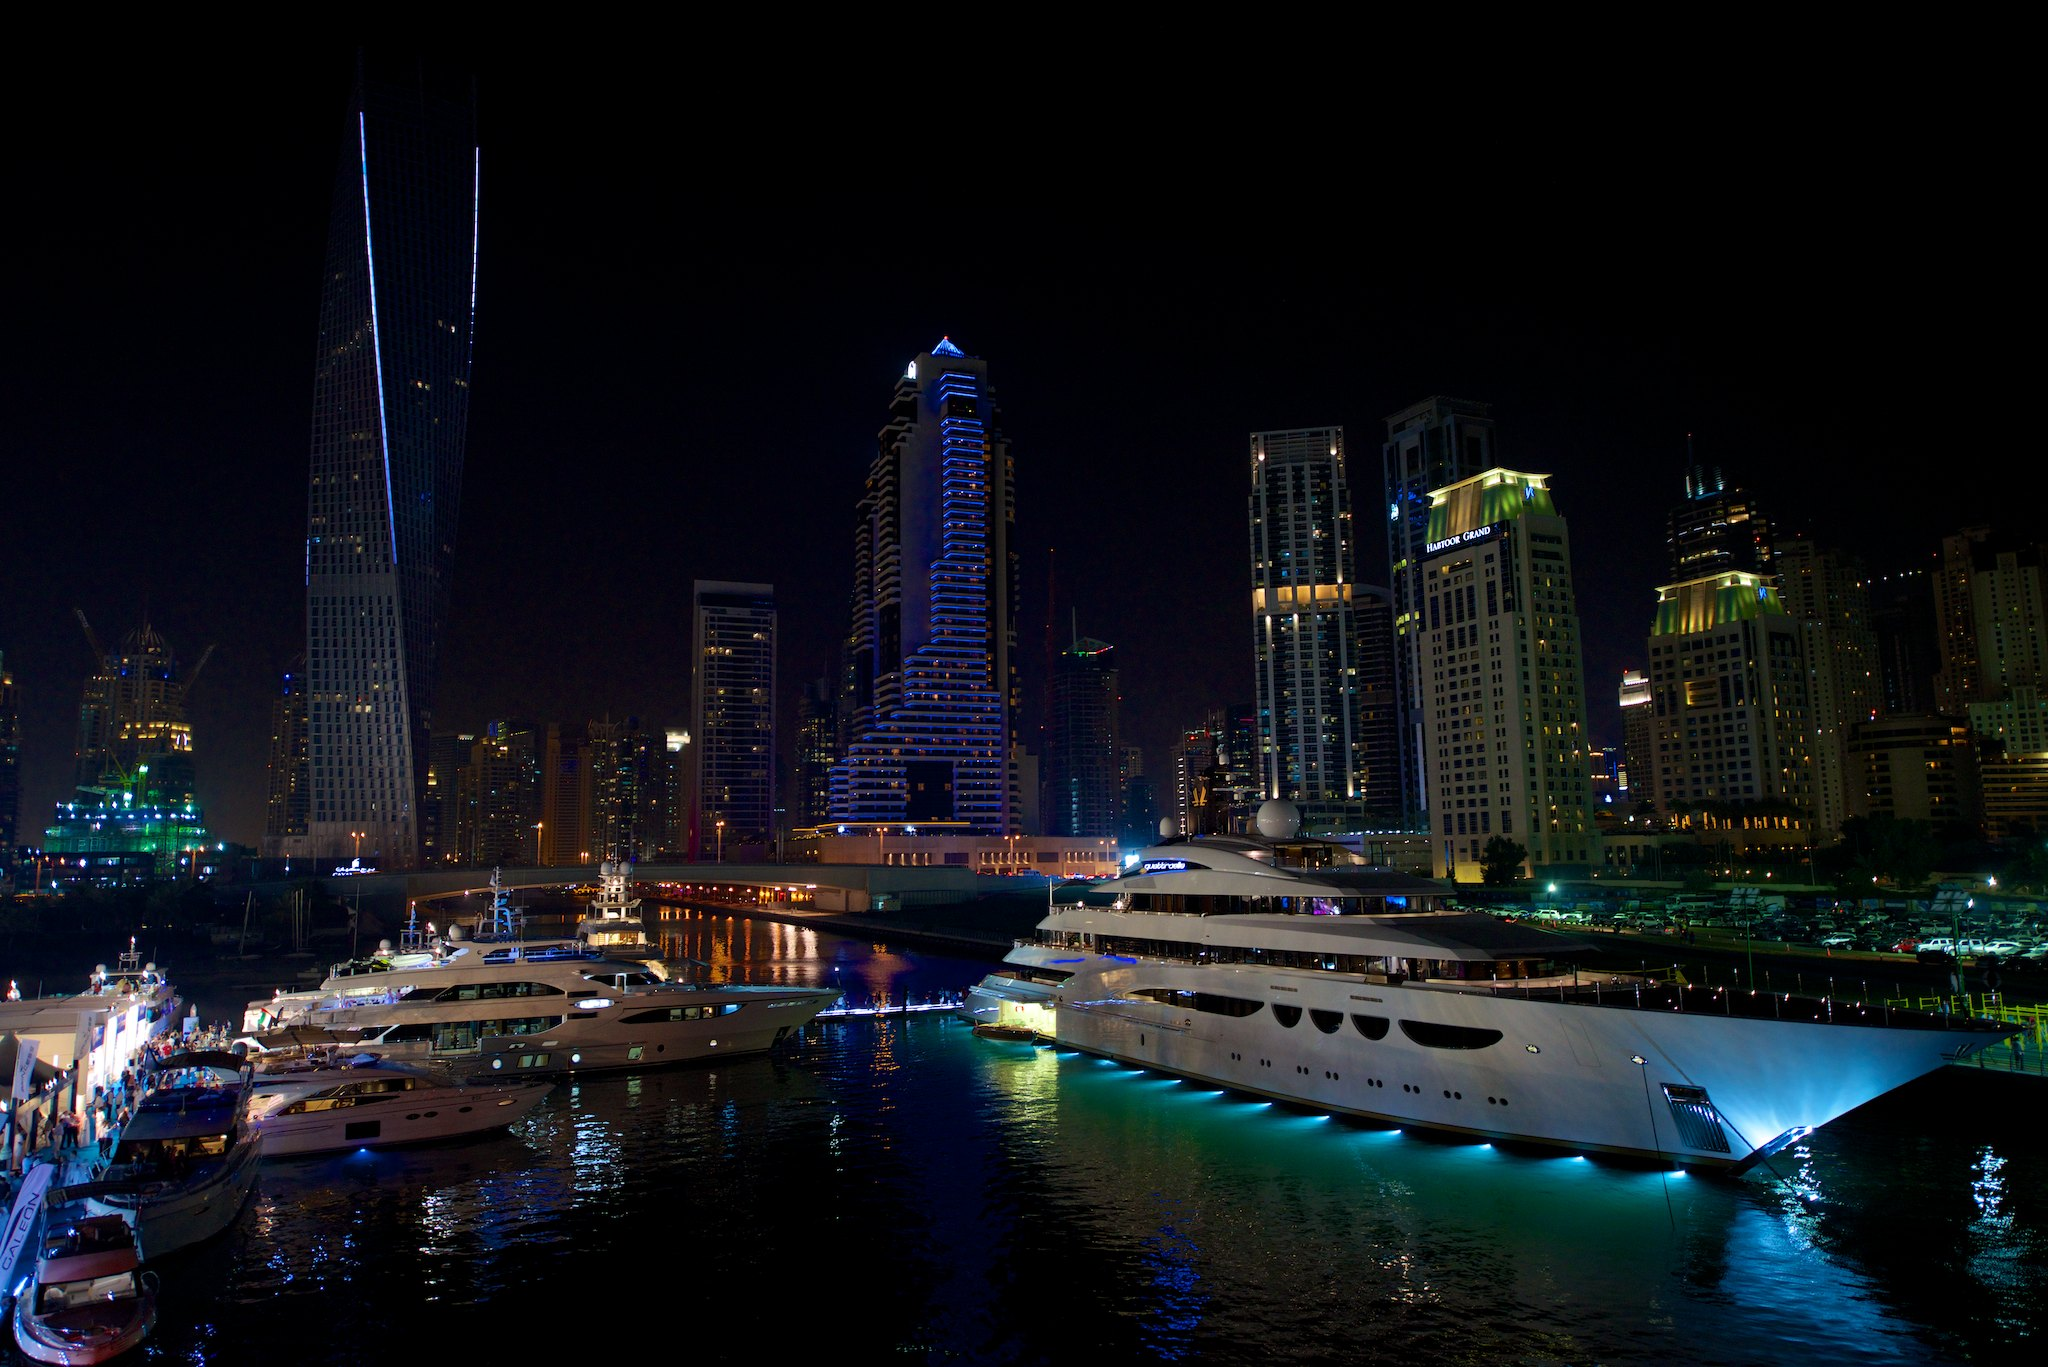 DIBS 2014 By Night Yacht Charter Amp Superyacht News